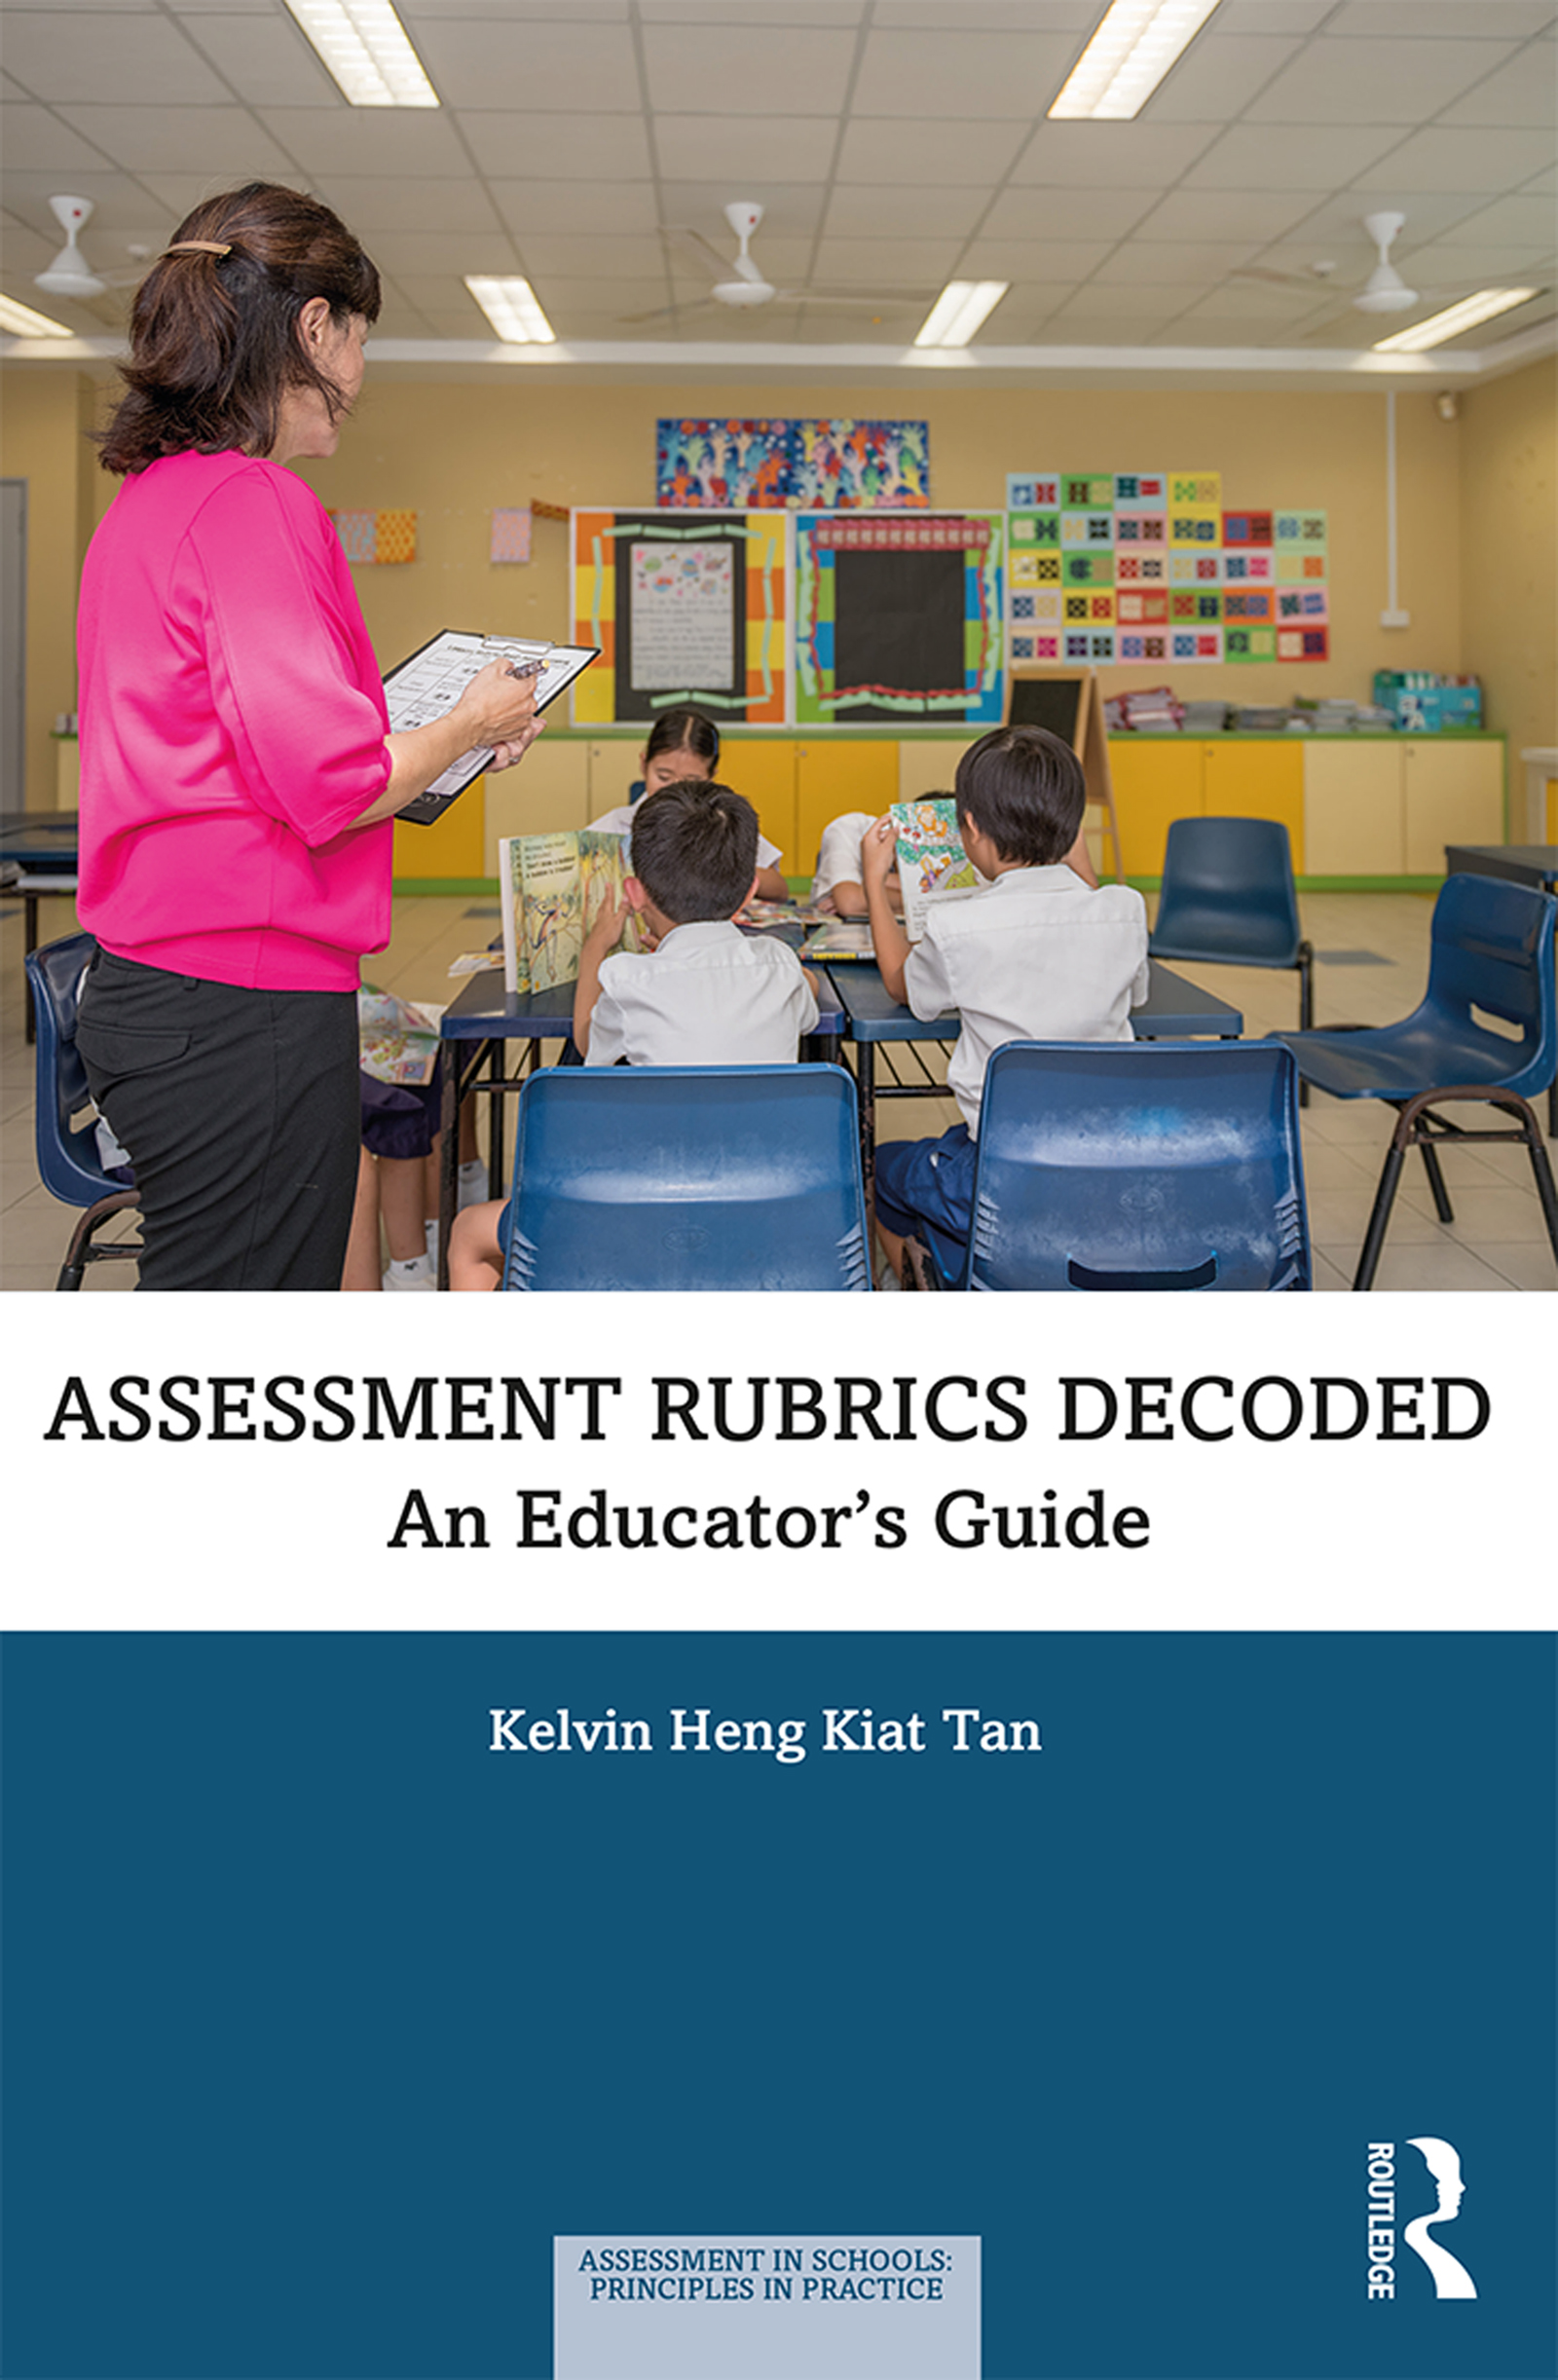 Assessment Rubrics Decoded